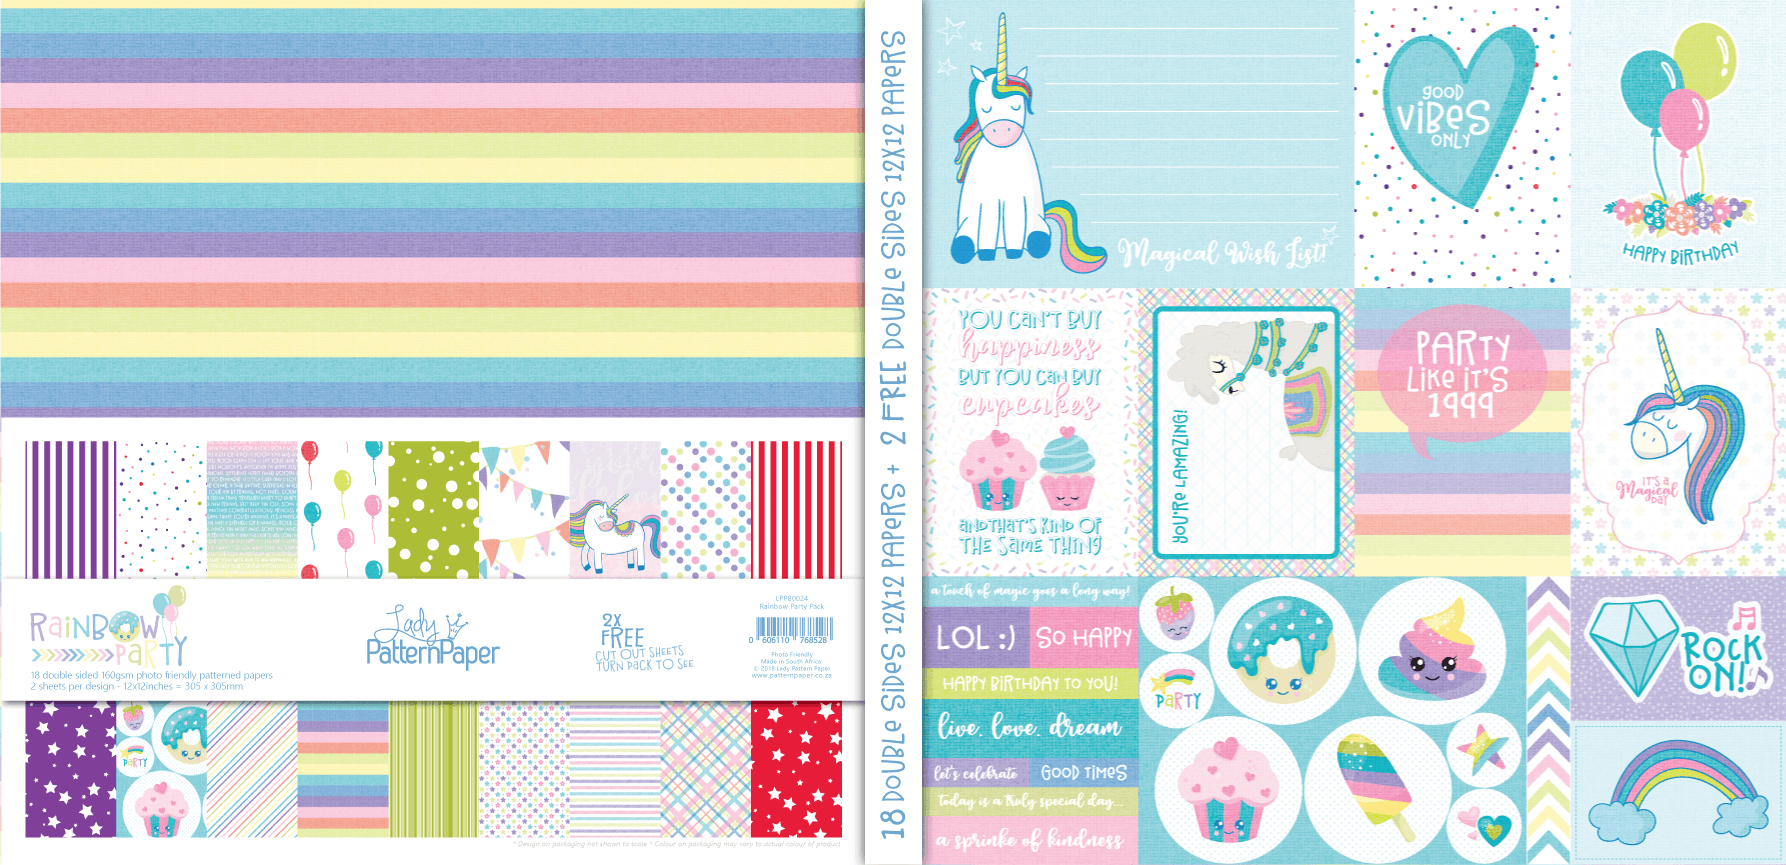 LPPB0024 - Rainbow Party - Paper Pack